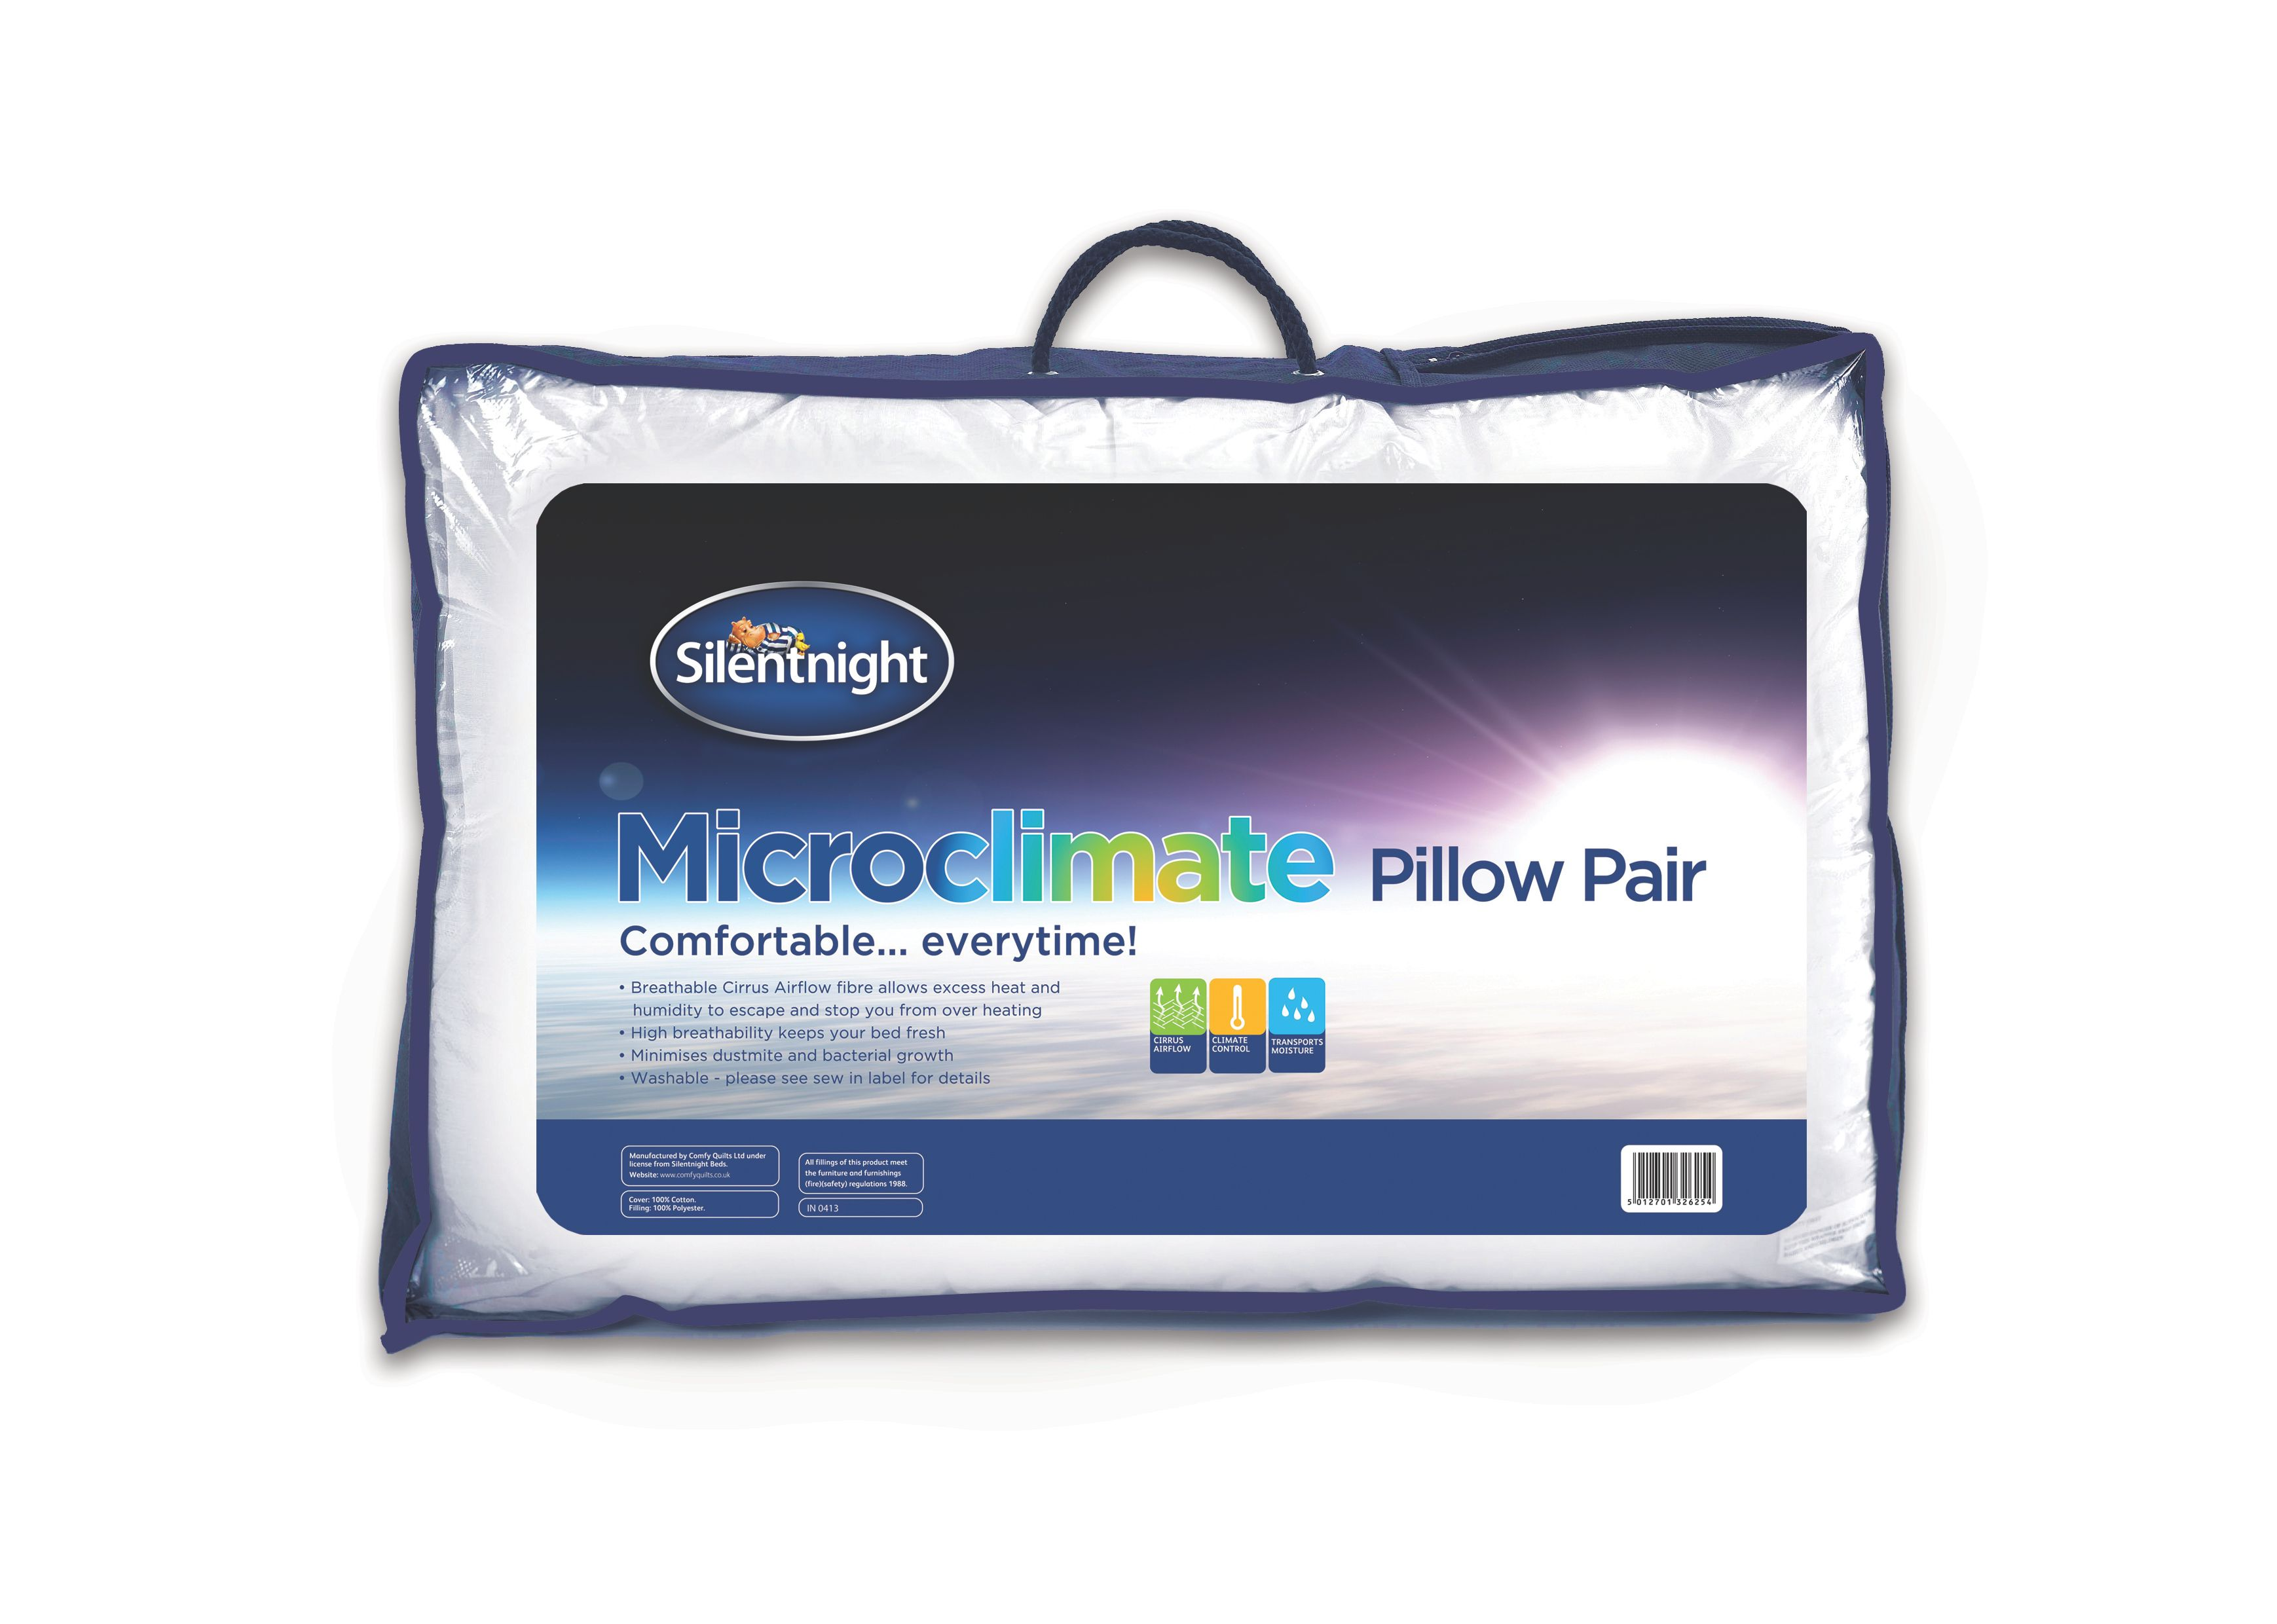 Silentnight microclimate pillow pair